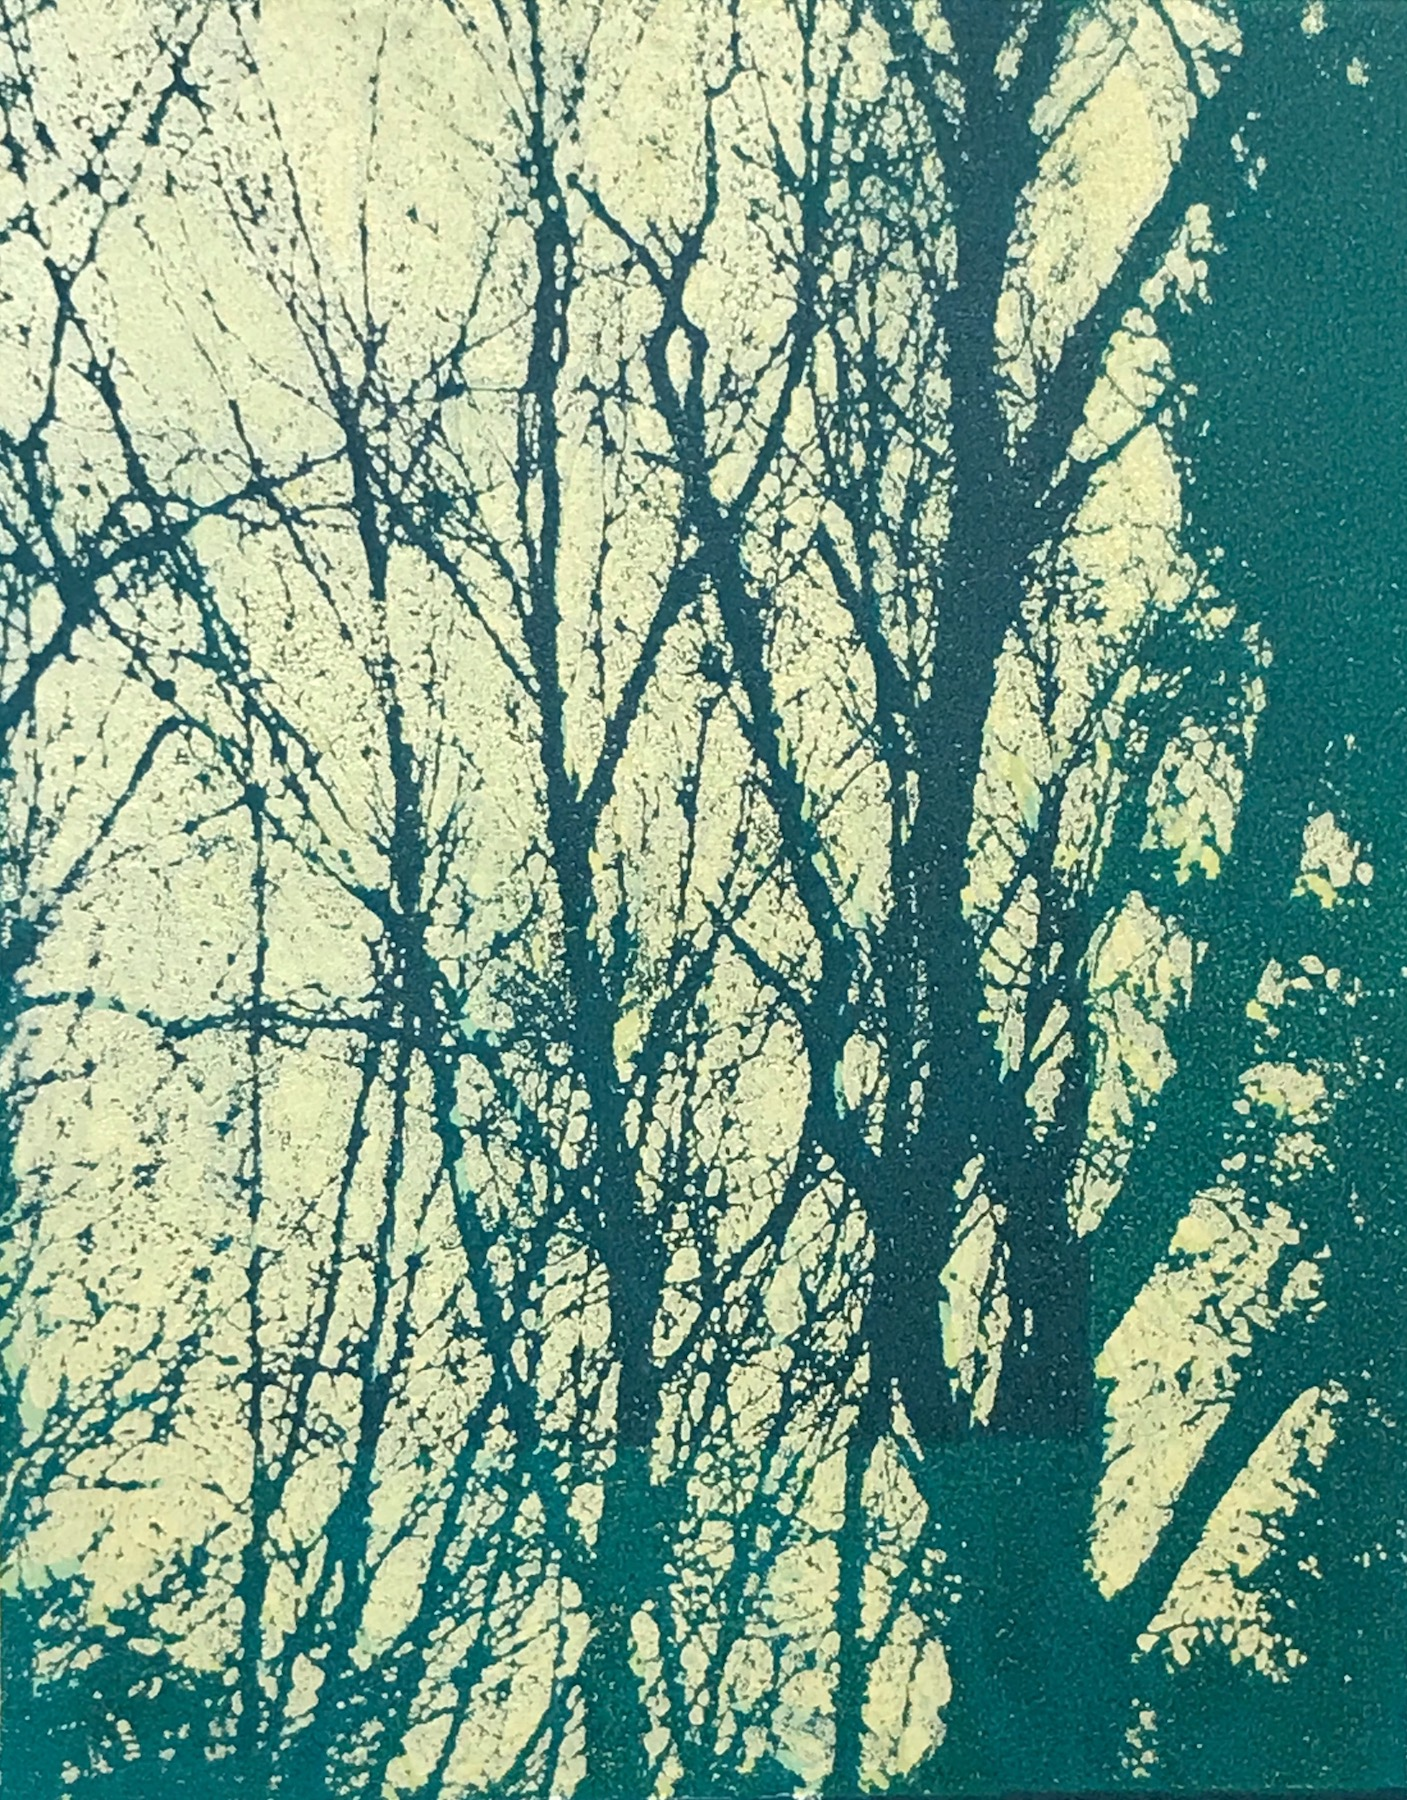 """Sundrenched Forest IV"", monoprint, 10"" x 8"", $150 (unframed)"